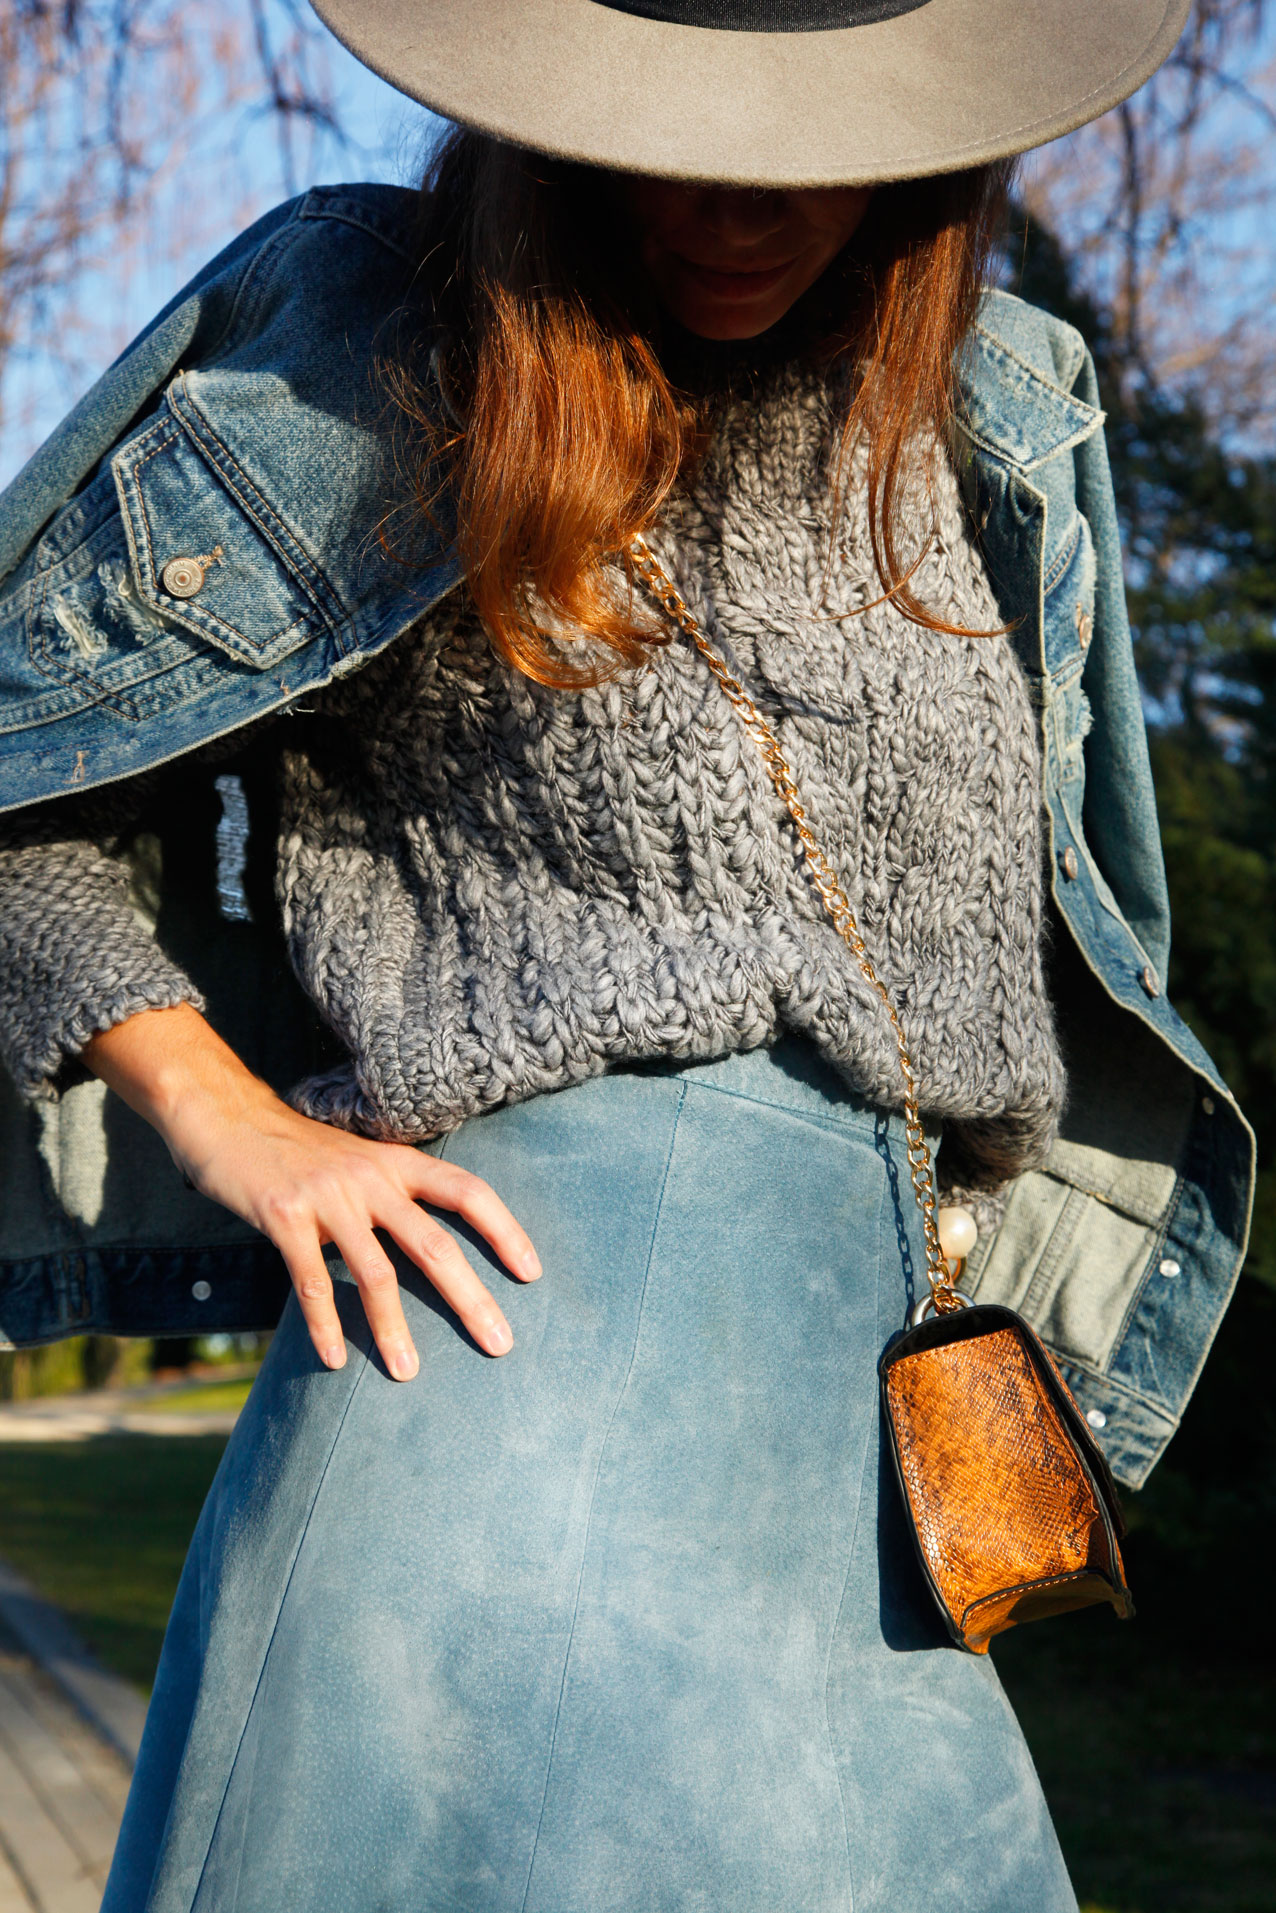 serenity_look-suede_skirt-polinetmoi-asos-grey_and_baby_blue_streetstyle_outfit_boho-cool_lemonade